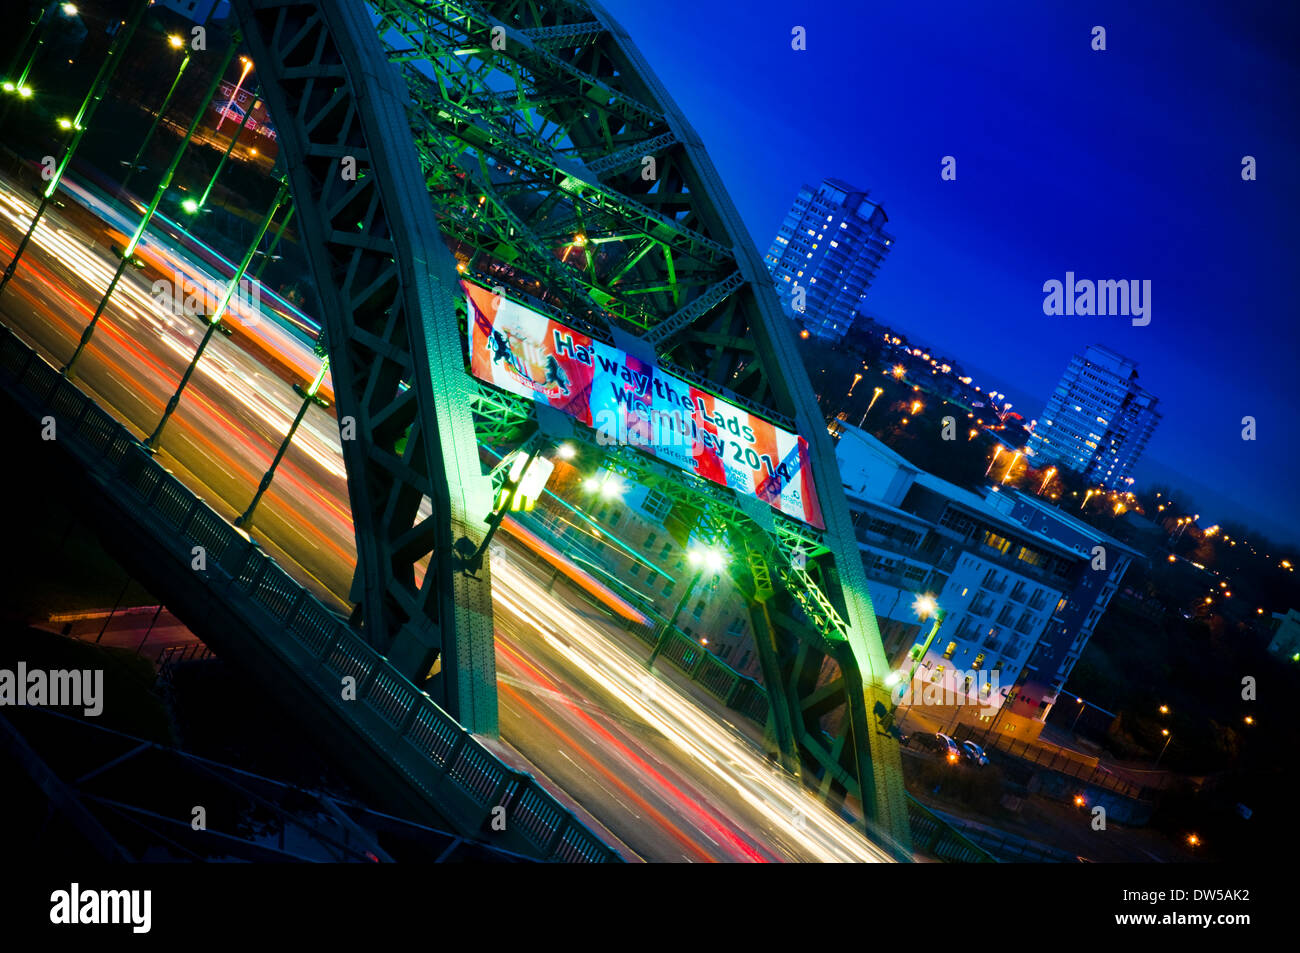 Sunderland, UK. 26th Feb, 2014. Sunderland City Council have put banners on the city's Wearmouth Bridge to celebrate Sunderland AFC reaching the Capital One Cup final. They will play Manchester City at Wembley on Sunday. Credit:  Paul Swinney/Alamy Live News - Stock Image